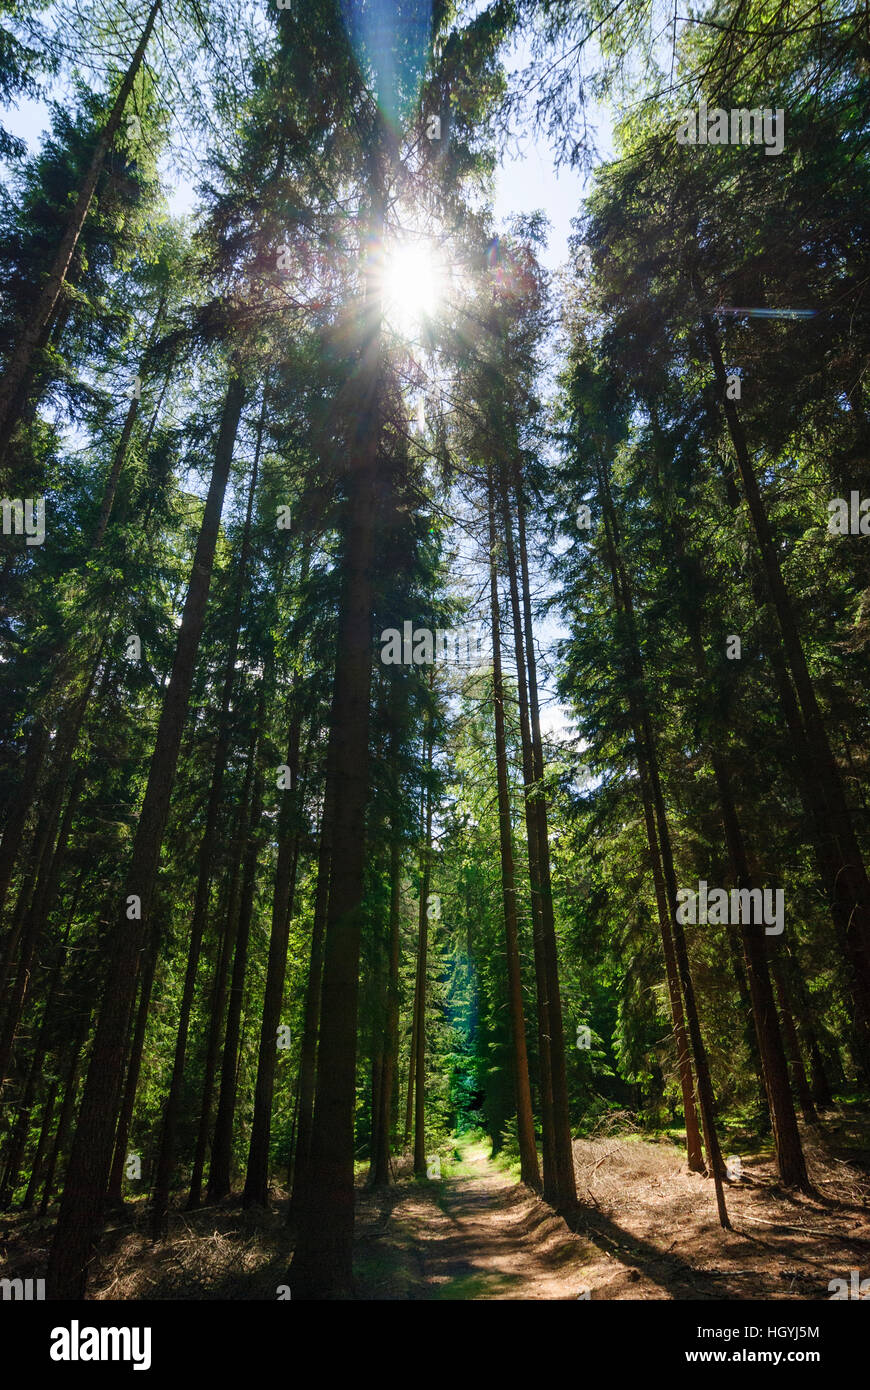 Bad Brambach: Spruces in the Elstergebirge, Vogtland, Sachsen, Saxony, Germany Stock Photo